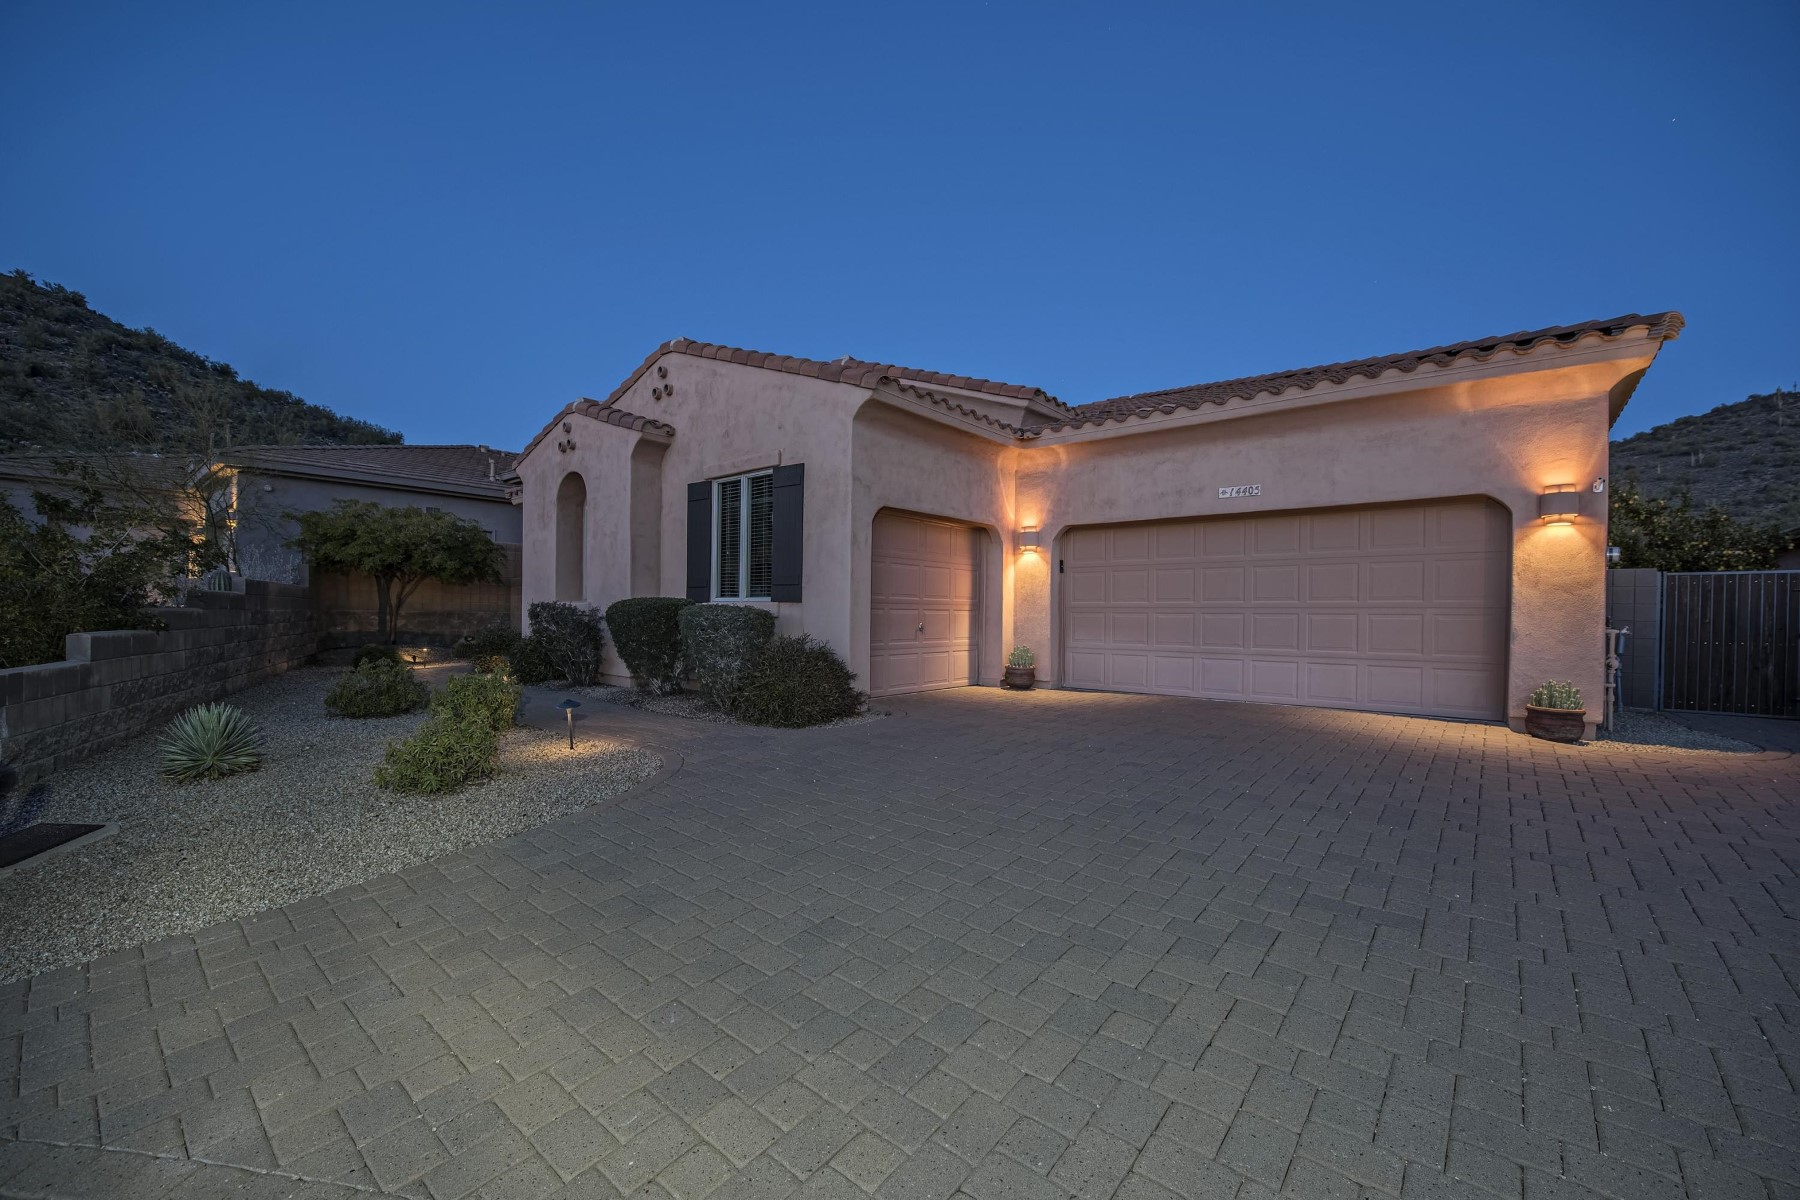 Single Family Home for Sale at Stunning home with views 14405 E Geronimo Rd Scottsdale, Arizona, 85259 United States